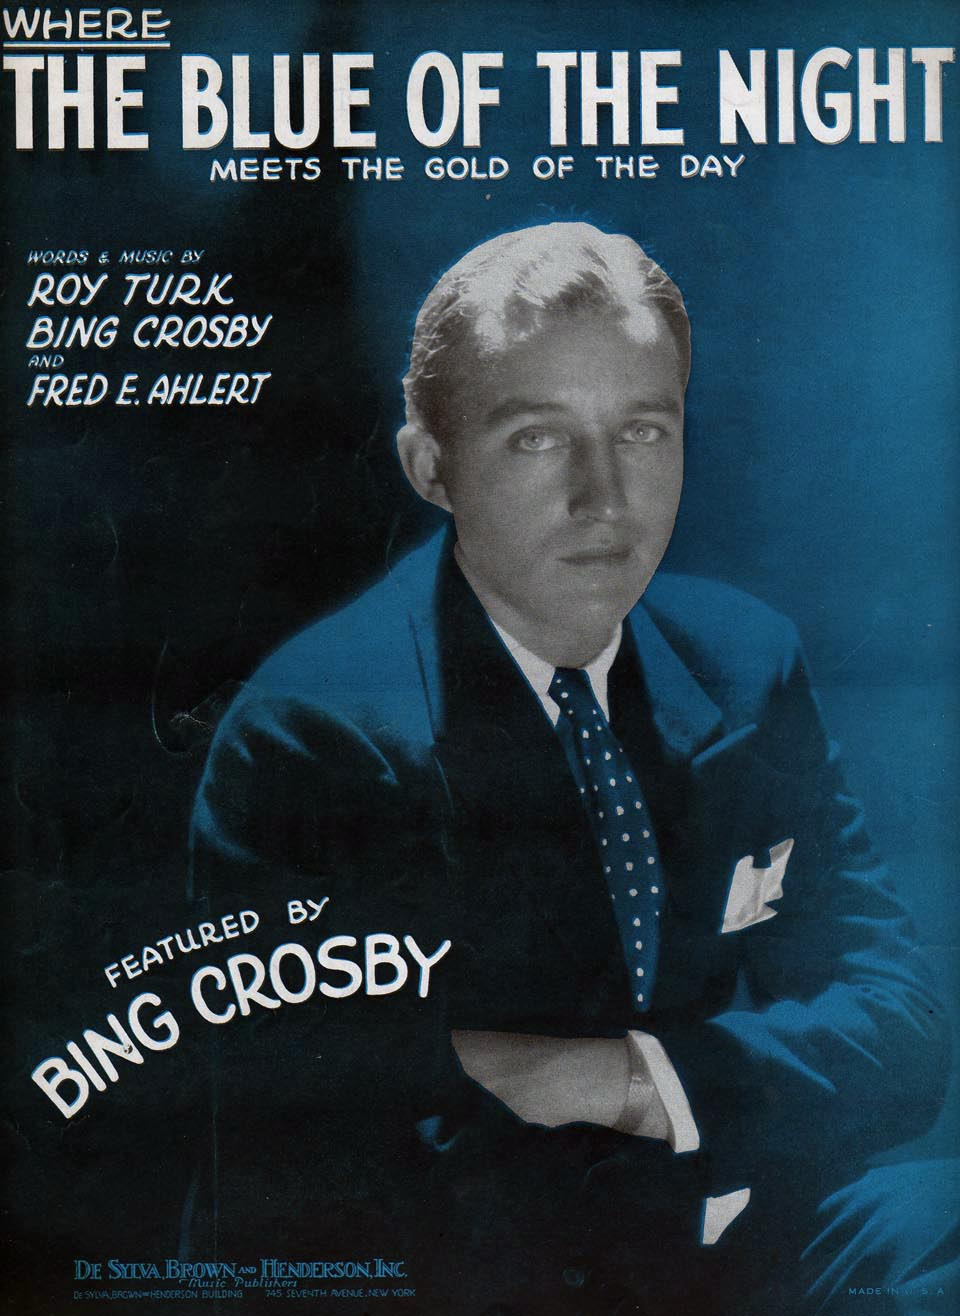 my favorite bing crosby solo recording is his theme song where the blue of the night meets the gold of the day rob b kindly sent a scan of the cover of